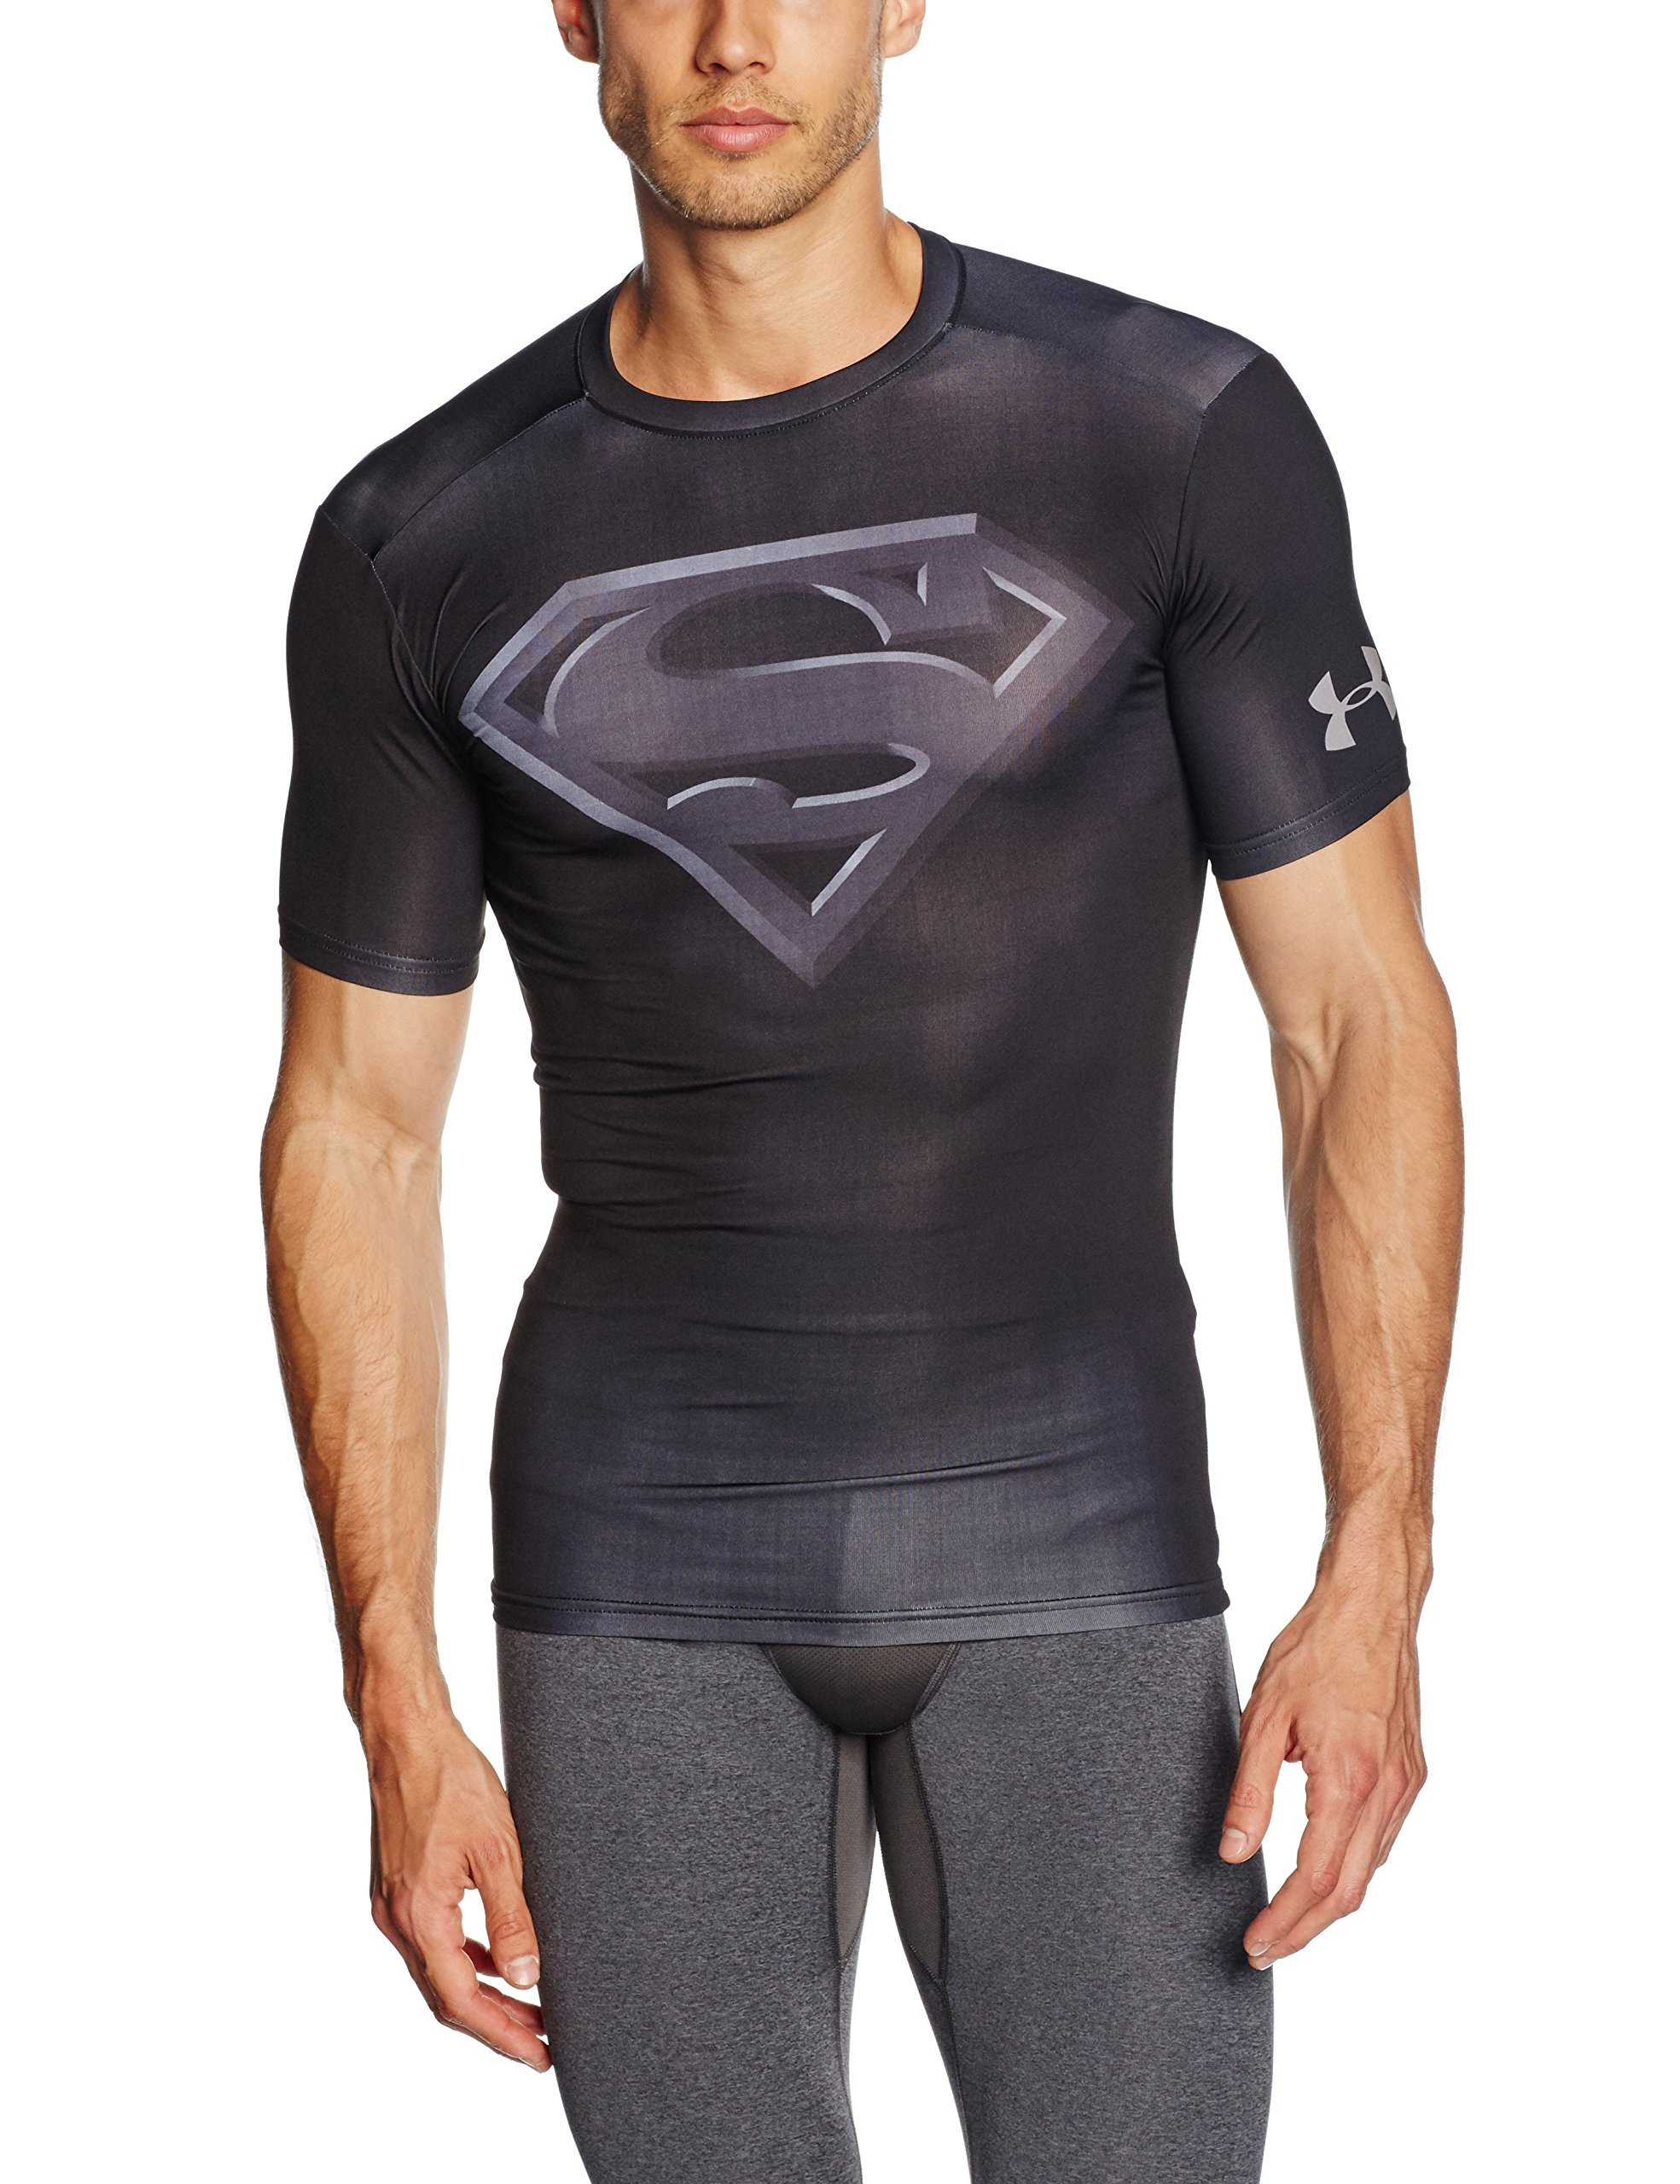 Under Armour Short Sleeve Alter EGO Compression T-Shirt - SS17 - Medium - Black: Amazon.com.au: Sports, Fitness & Outdoors